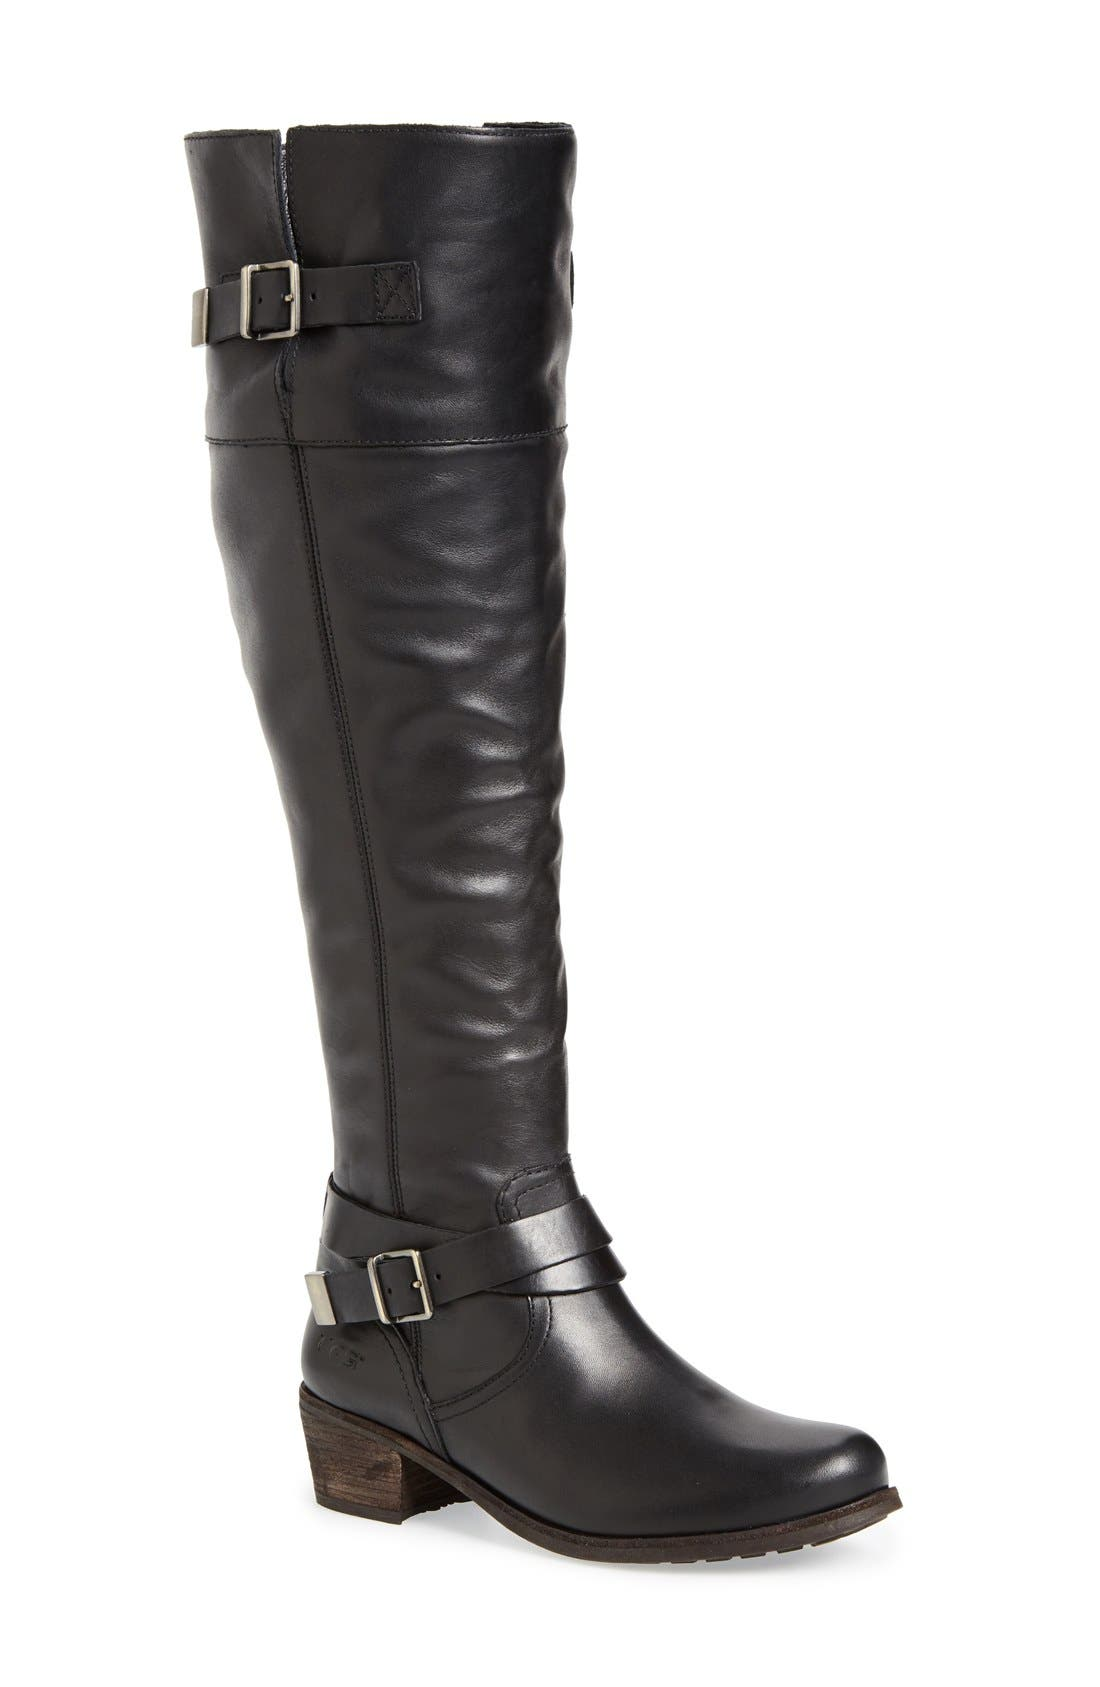 Main Image - UGG® 'Bess' Over the Knee Boot (Women)